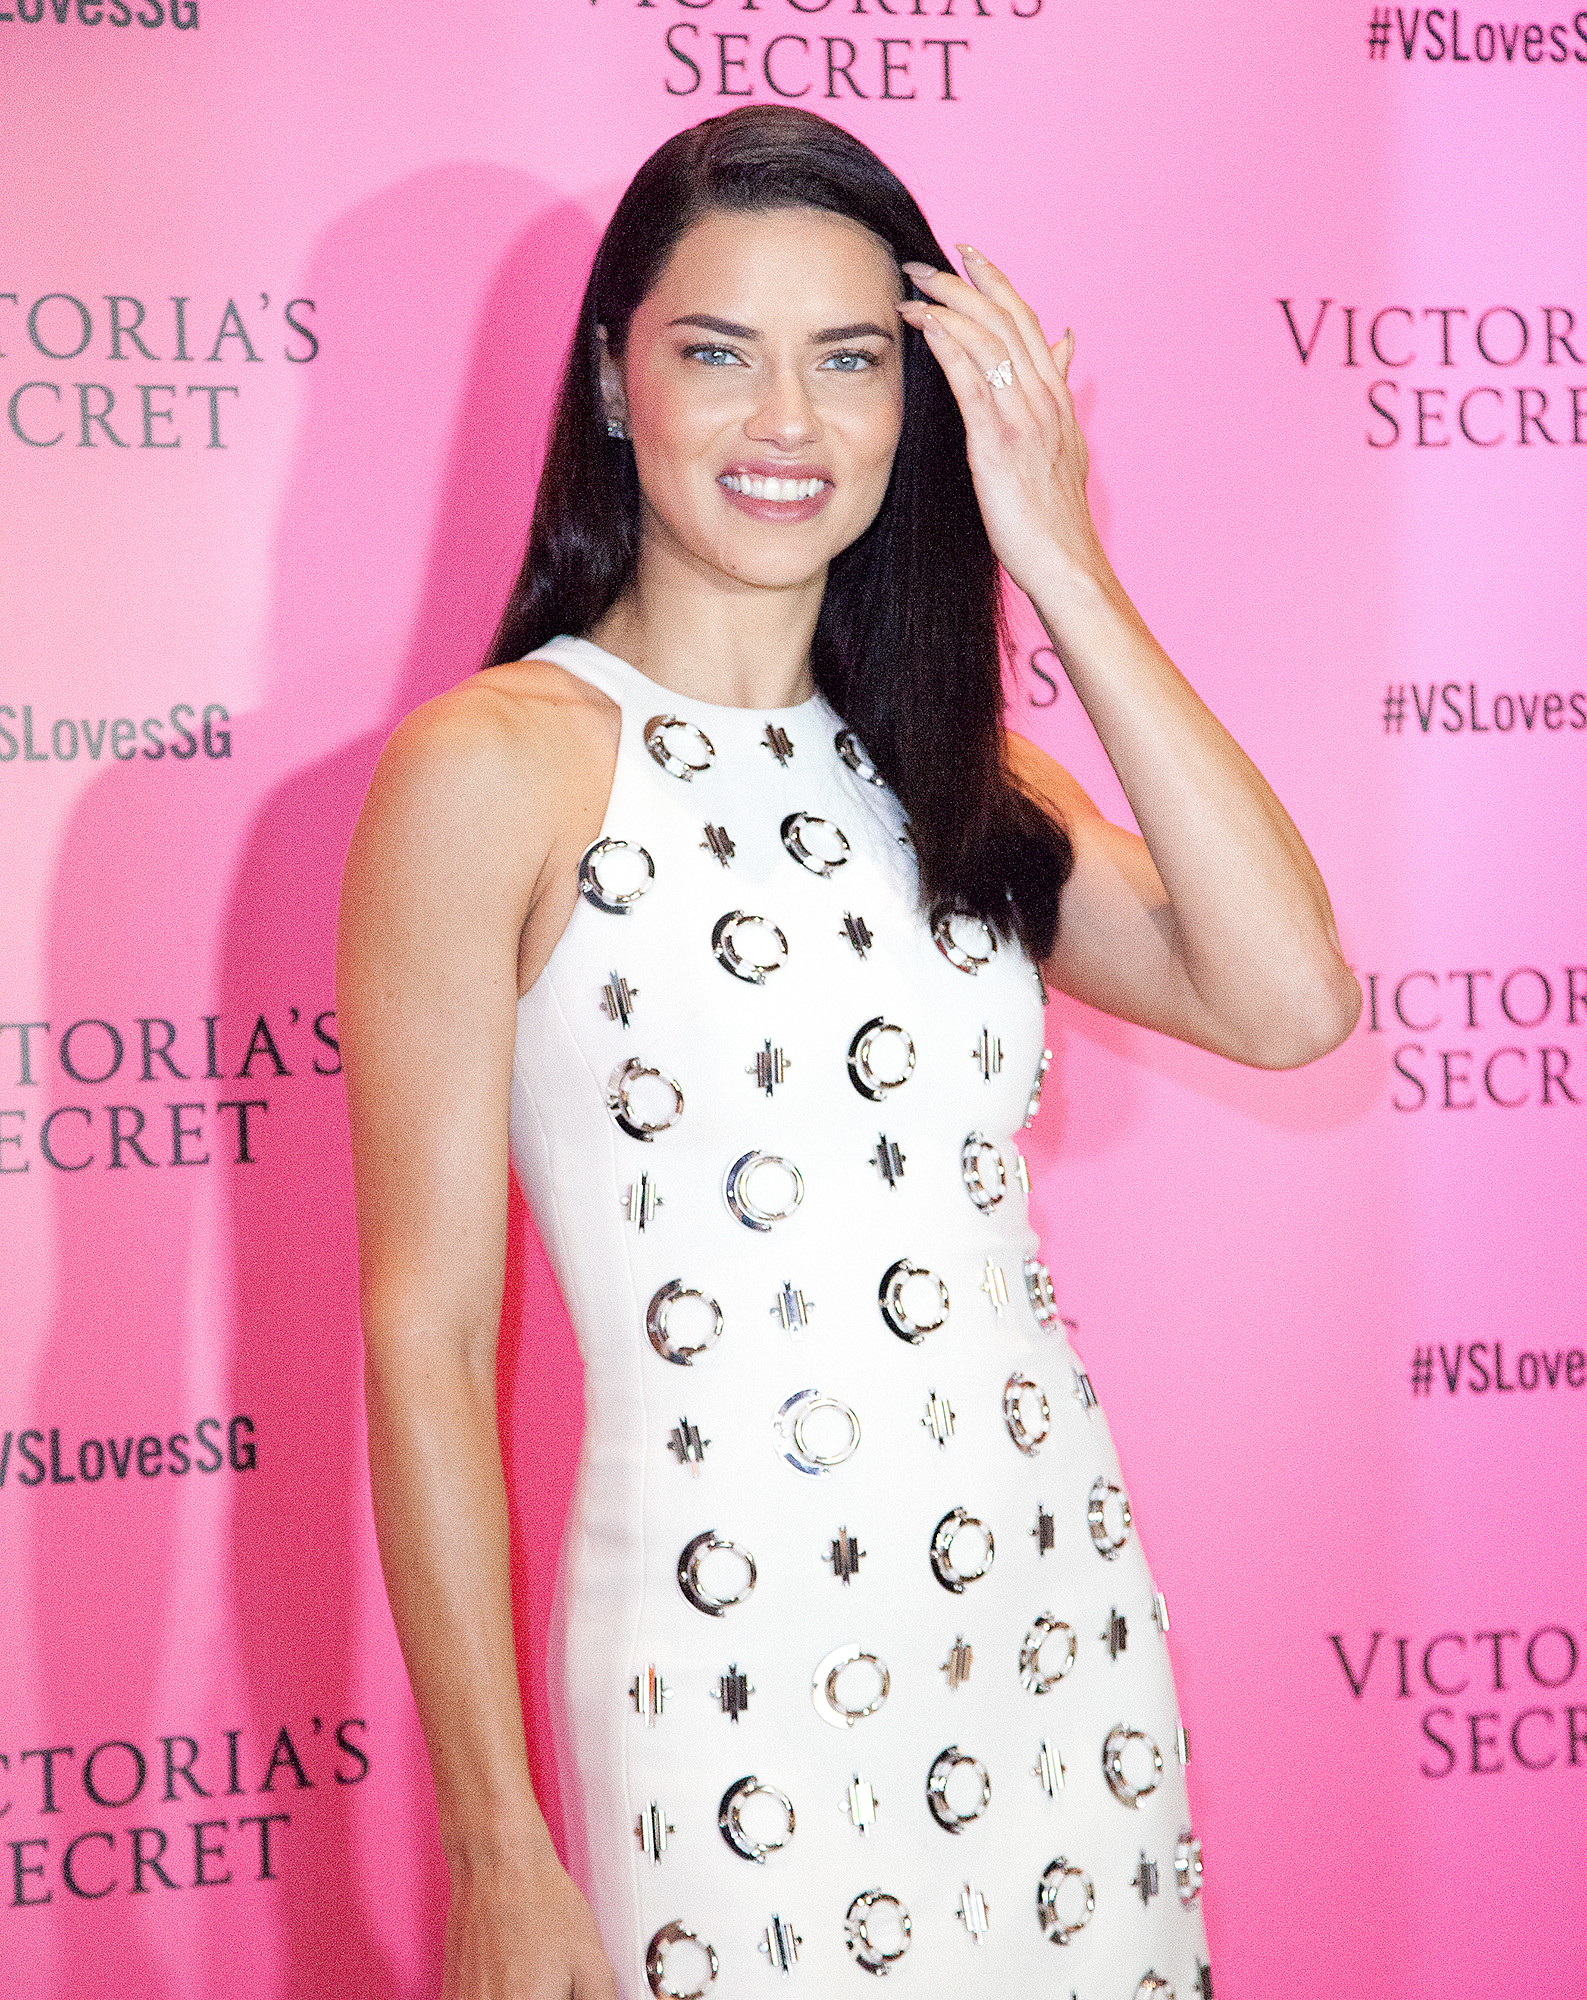 Victoria's Secret Angel Event In Singapore